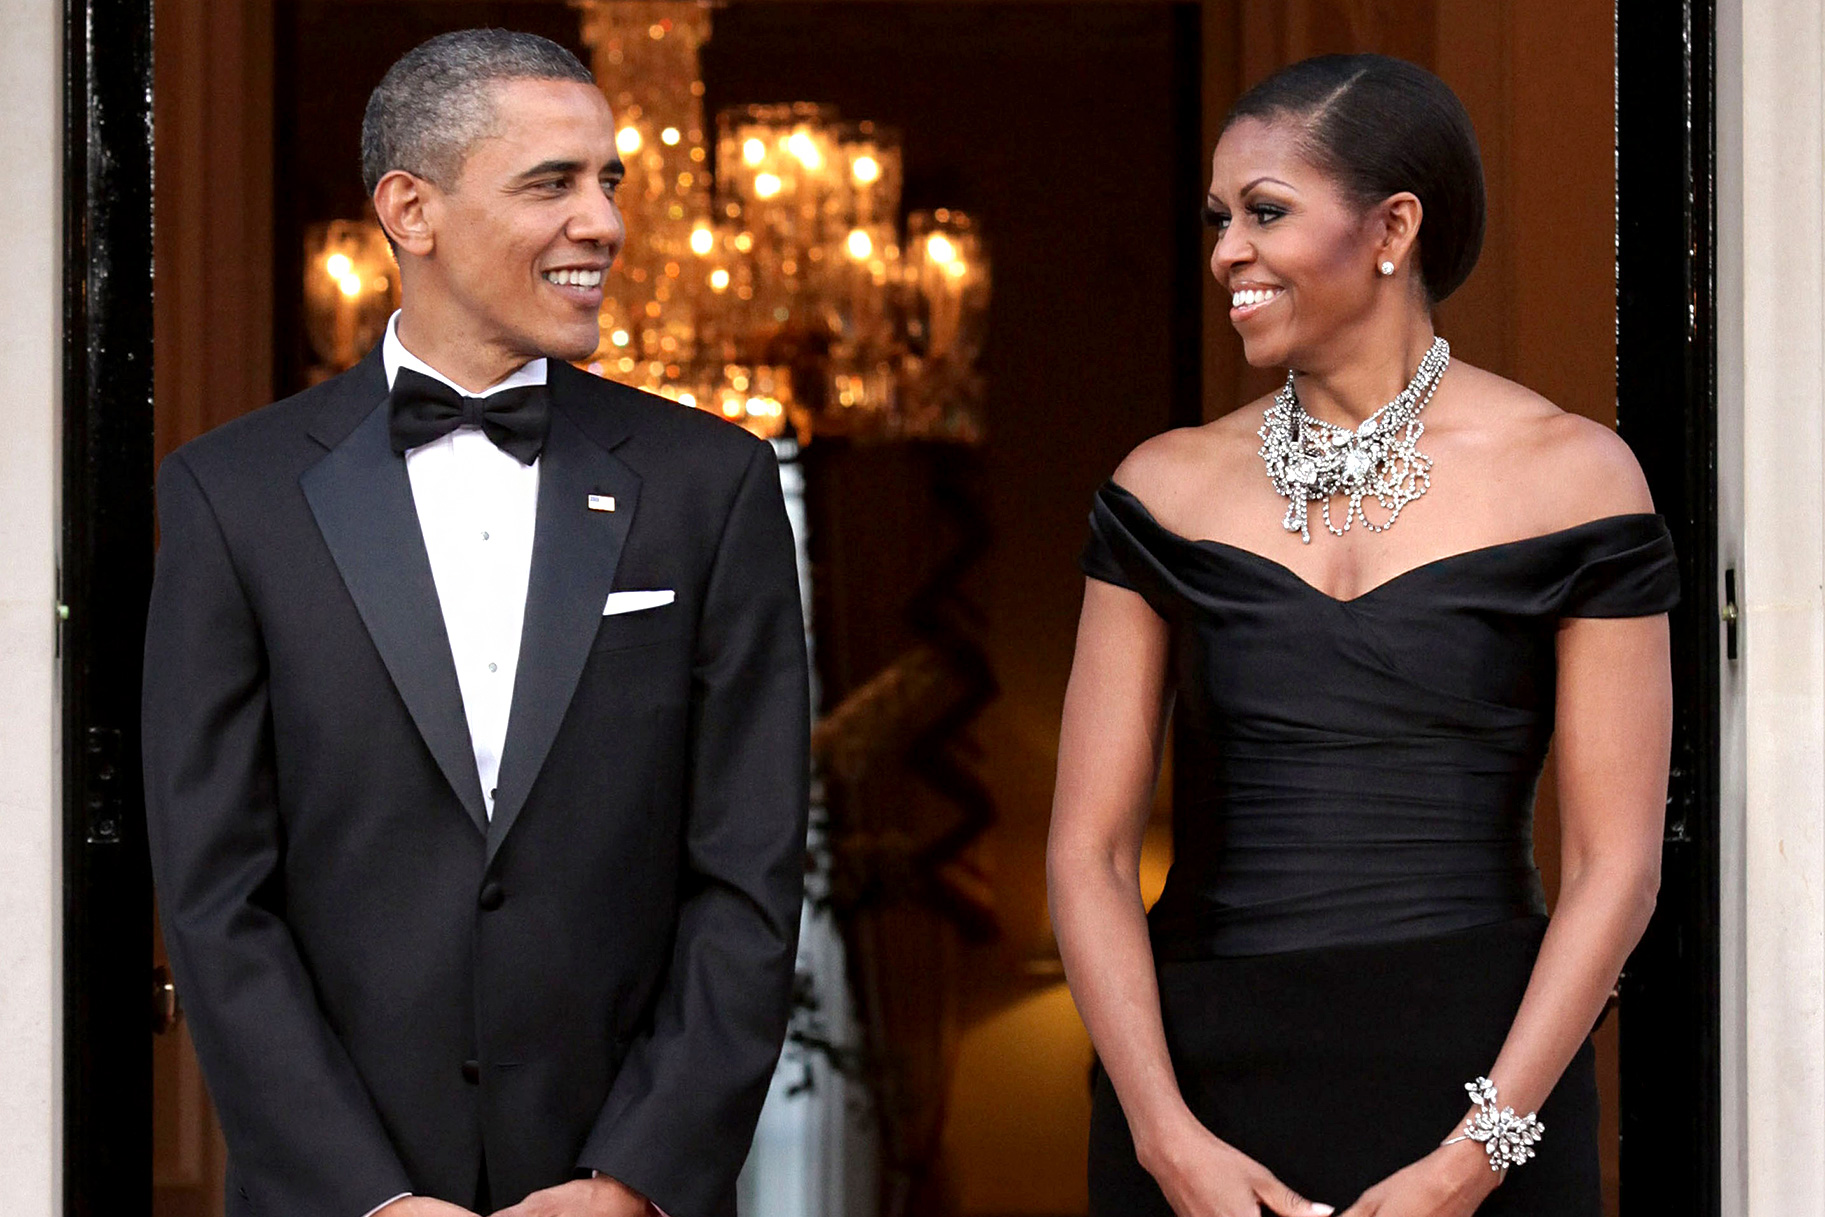 Michelle Obama Paid For All Her Outfits From Her Own Pocket While Serving As First Lady